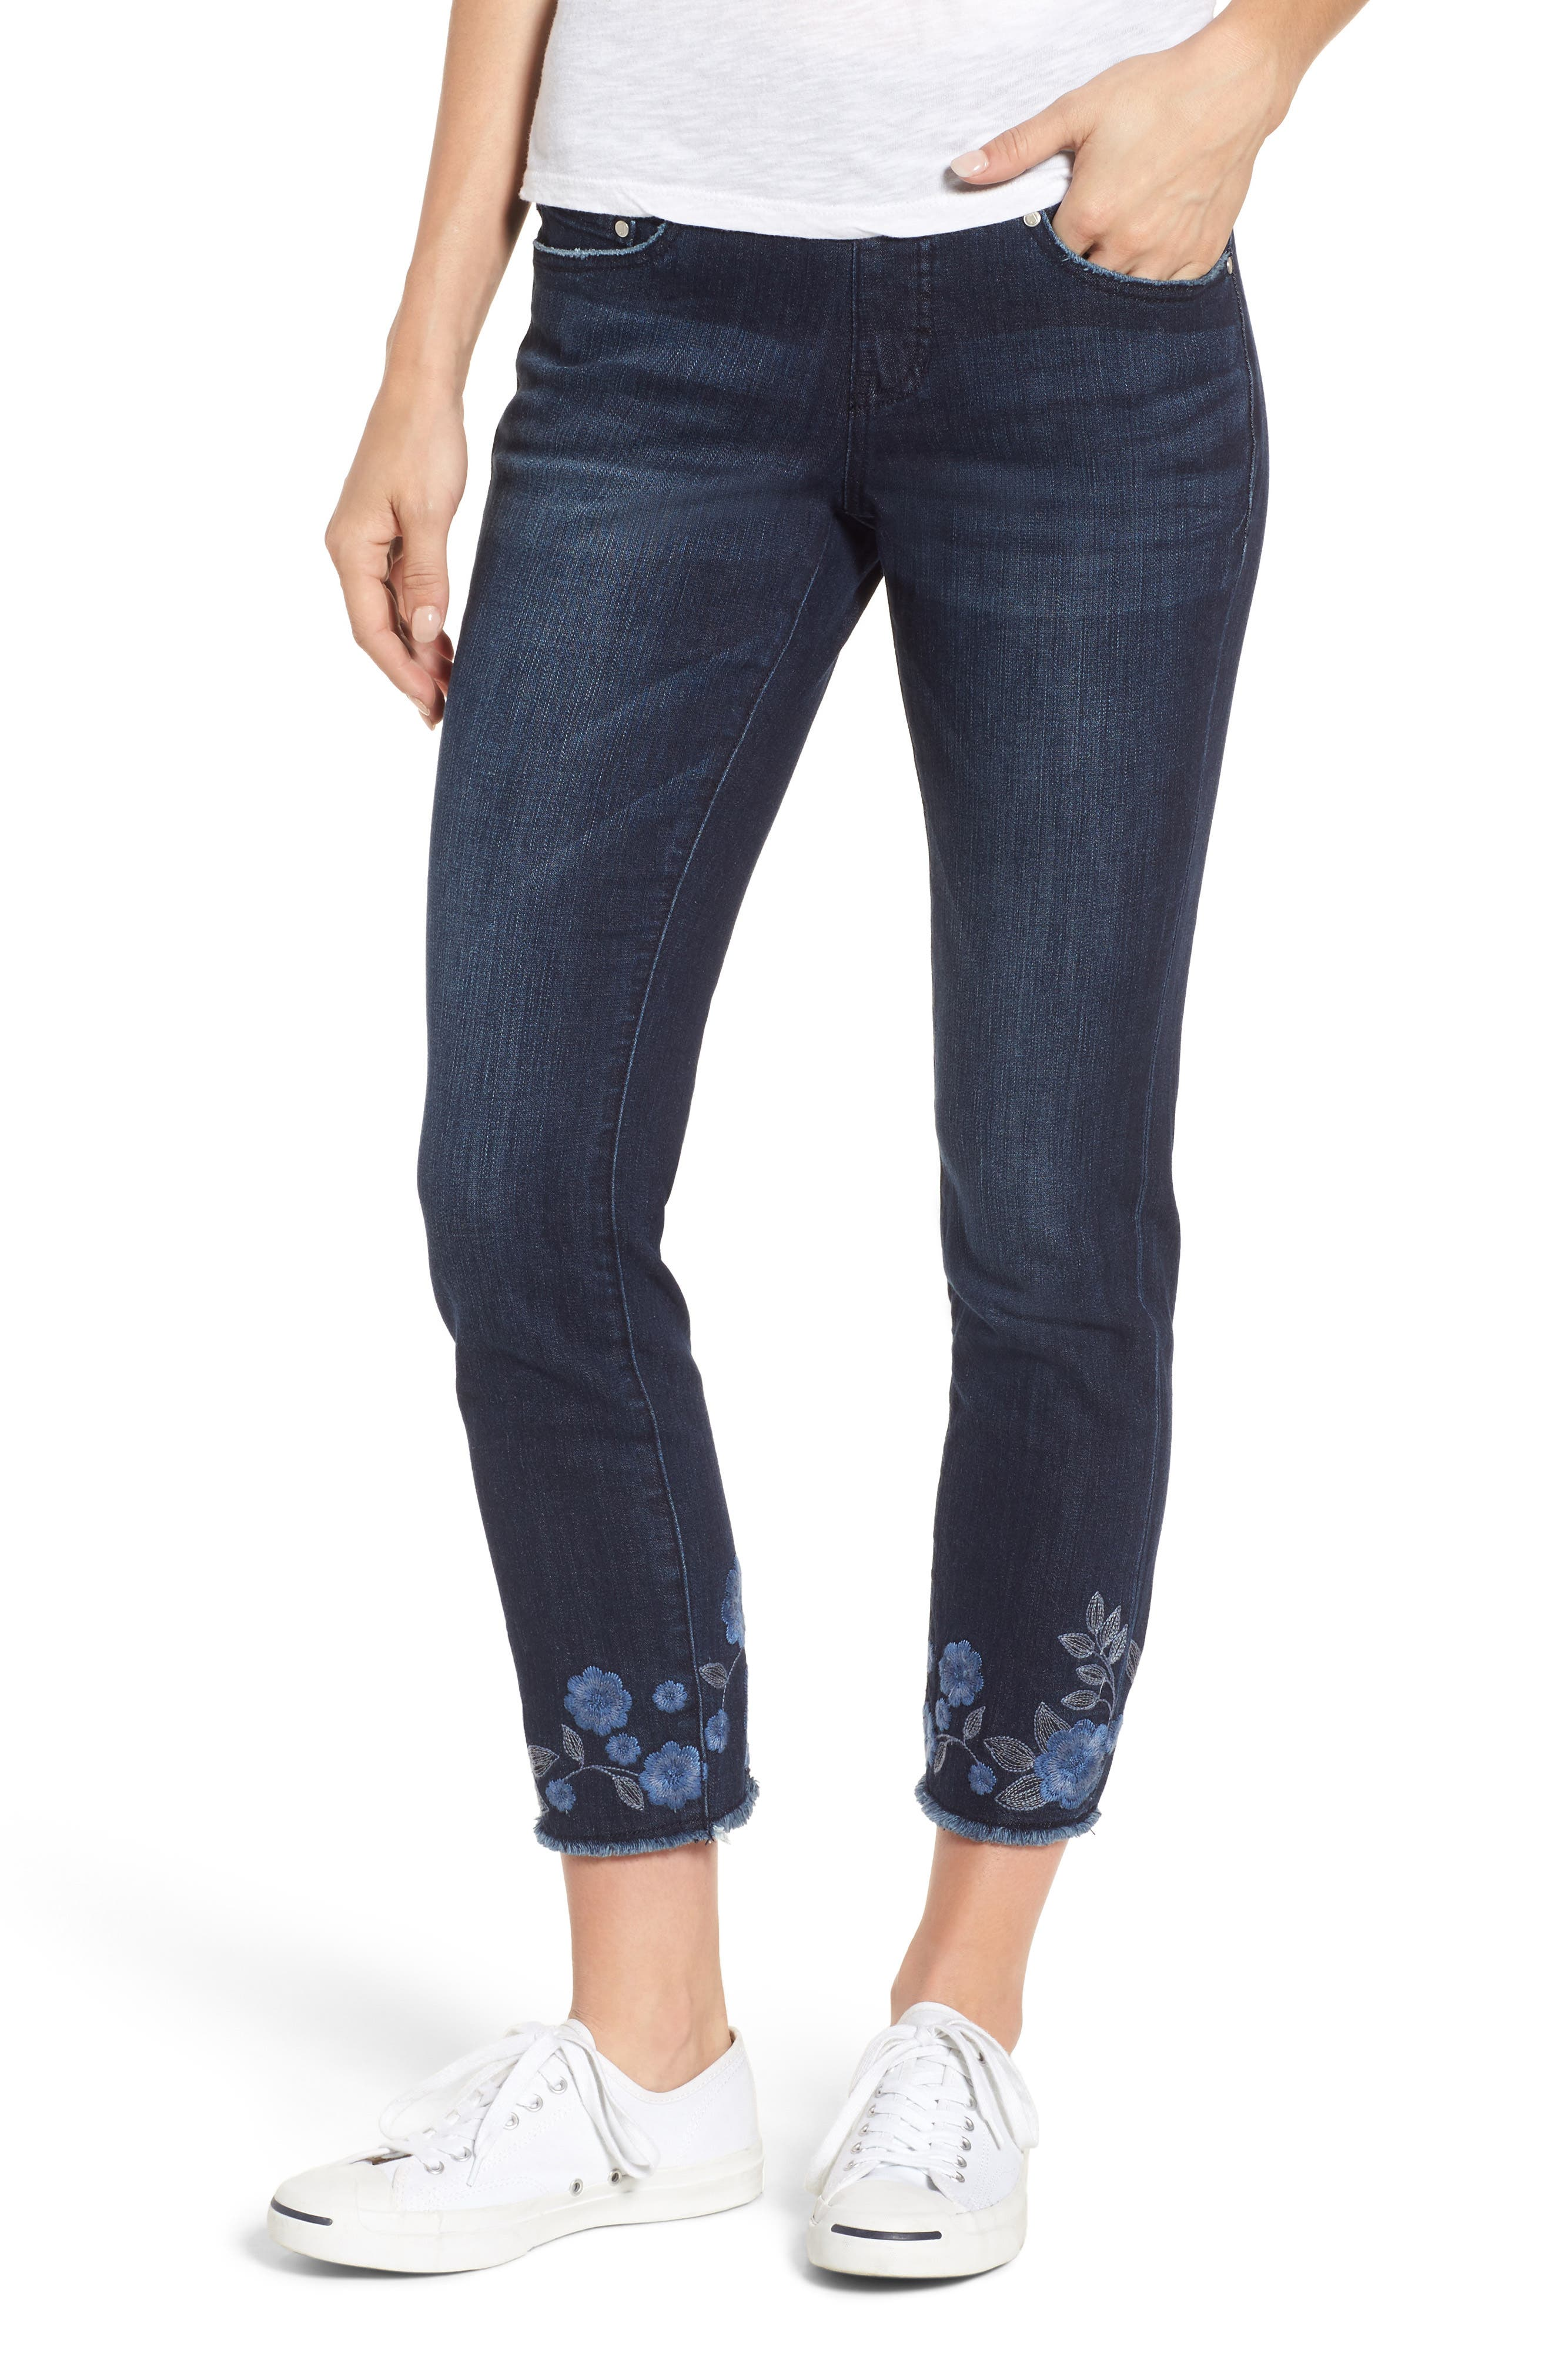 Alternate Image 1 Selected - Jag Jeans Amelia Embroidered Slim Ankle Jeans (Meteor)